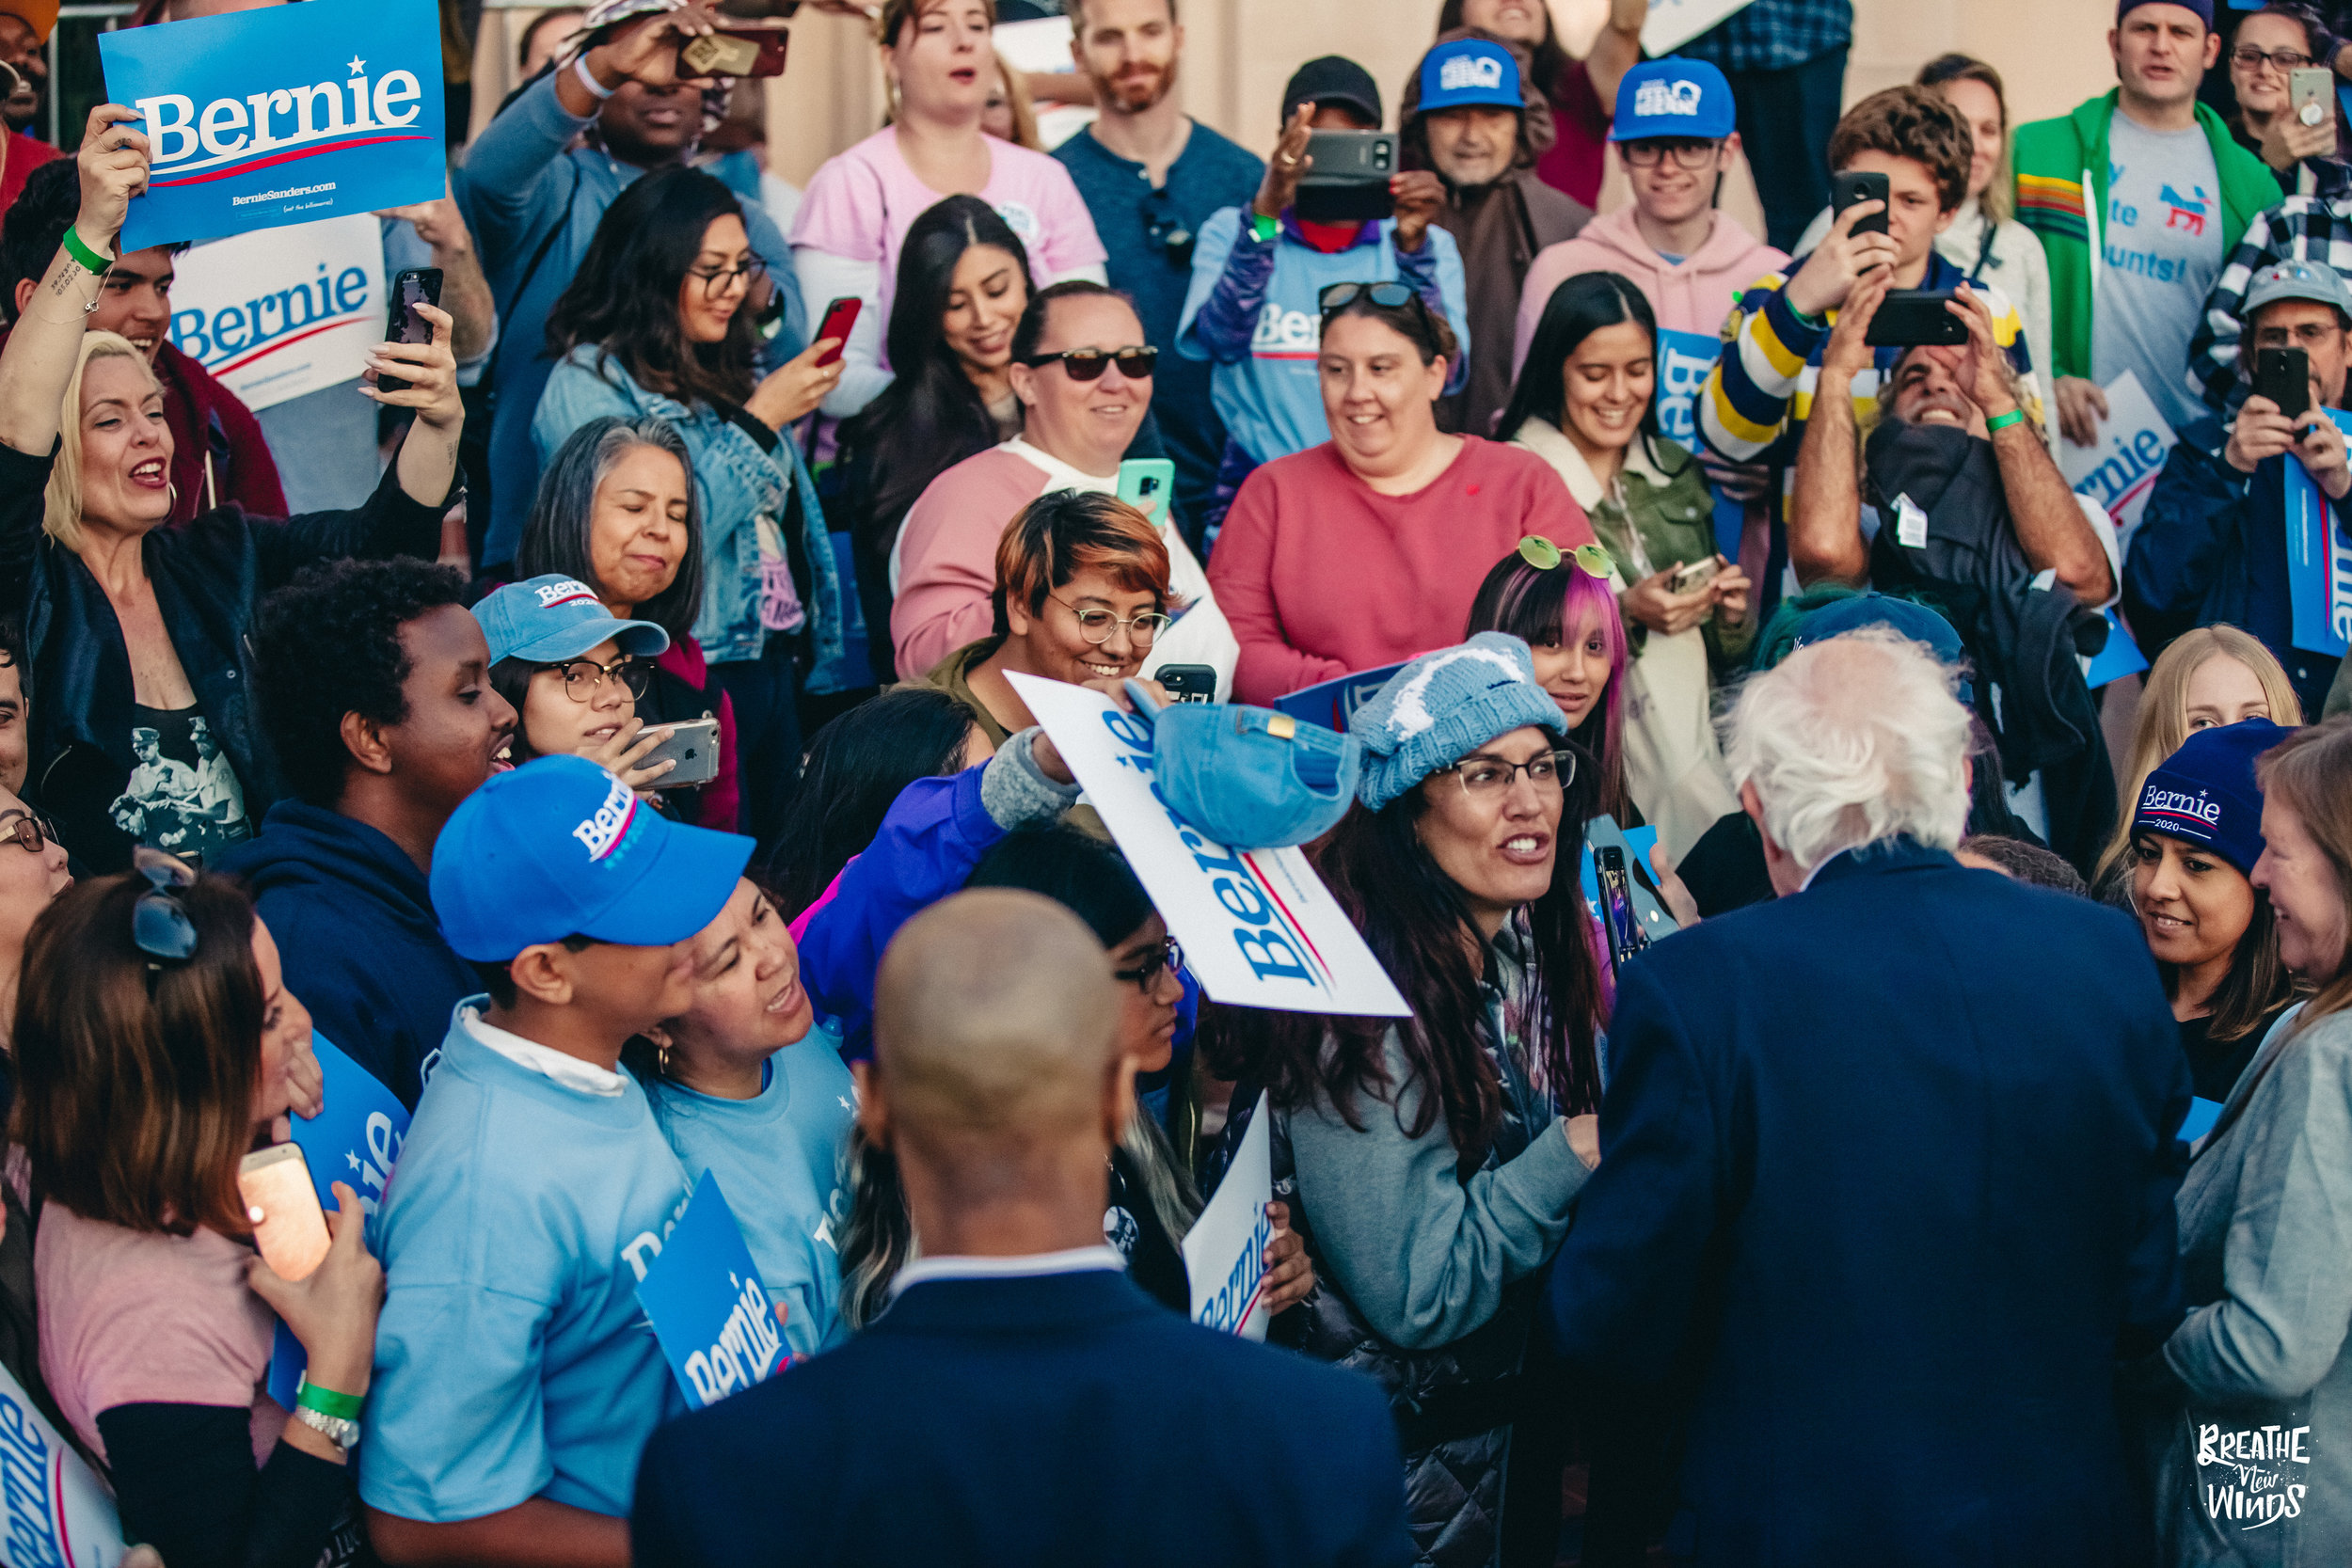 BernieInSD_22March2019-BernieAndFriends (75 of 78).jpg